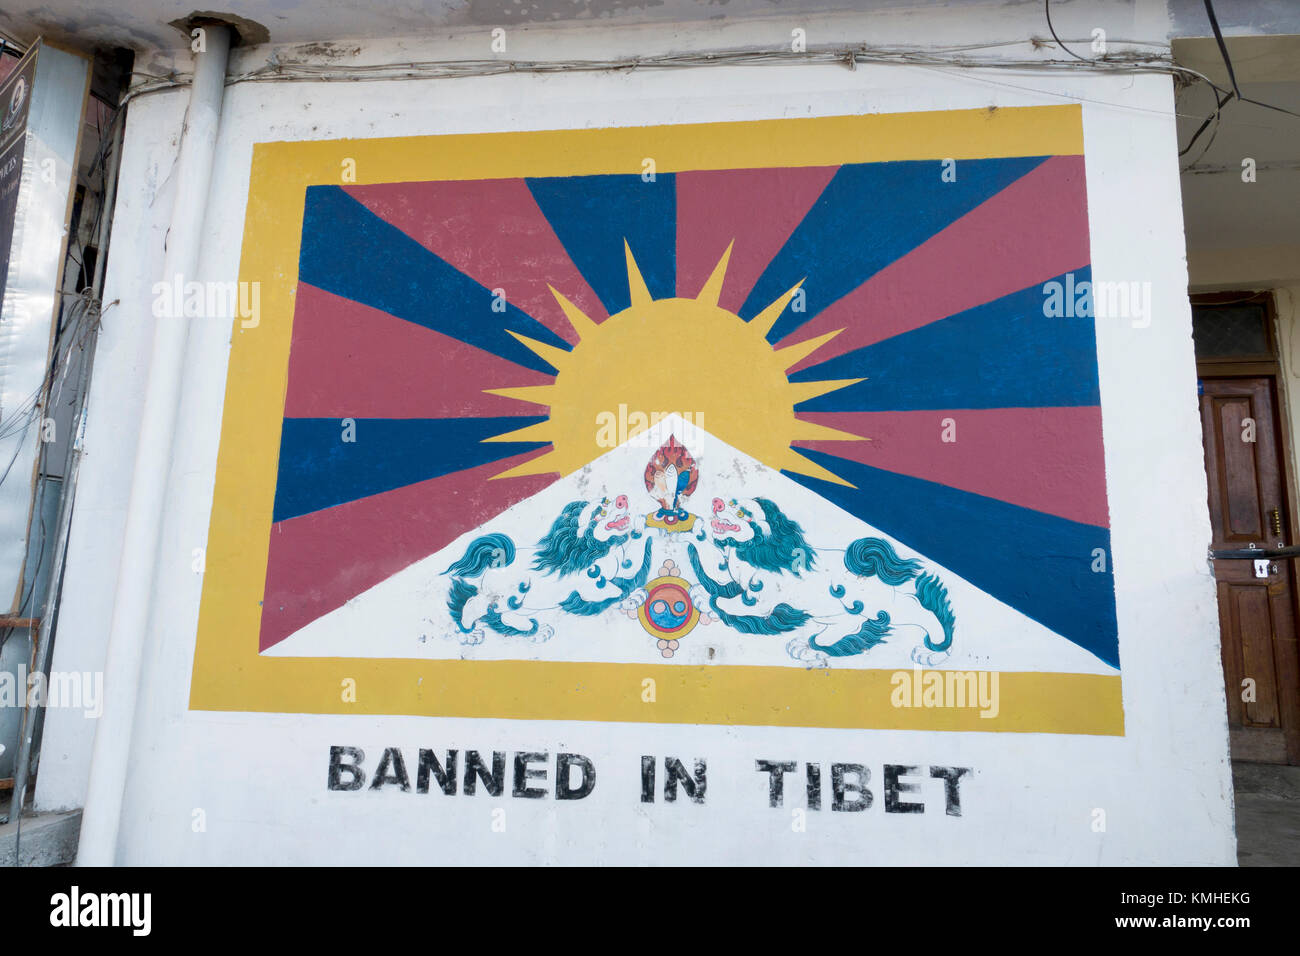 Painting of Tibet flag on wall in Mcleod Ganj, India. Flying the Tibetan flag is banned in Tibet. - Stock Image